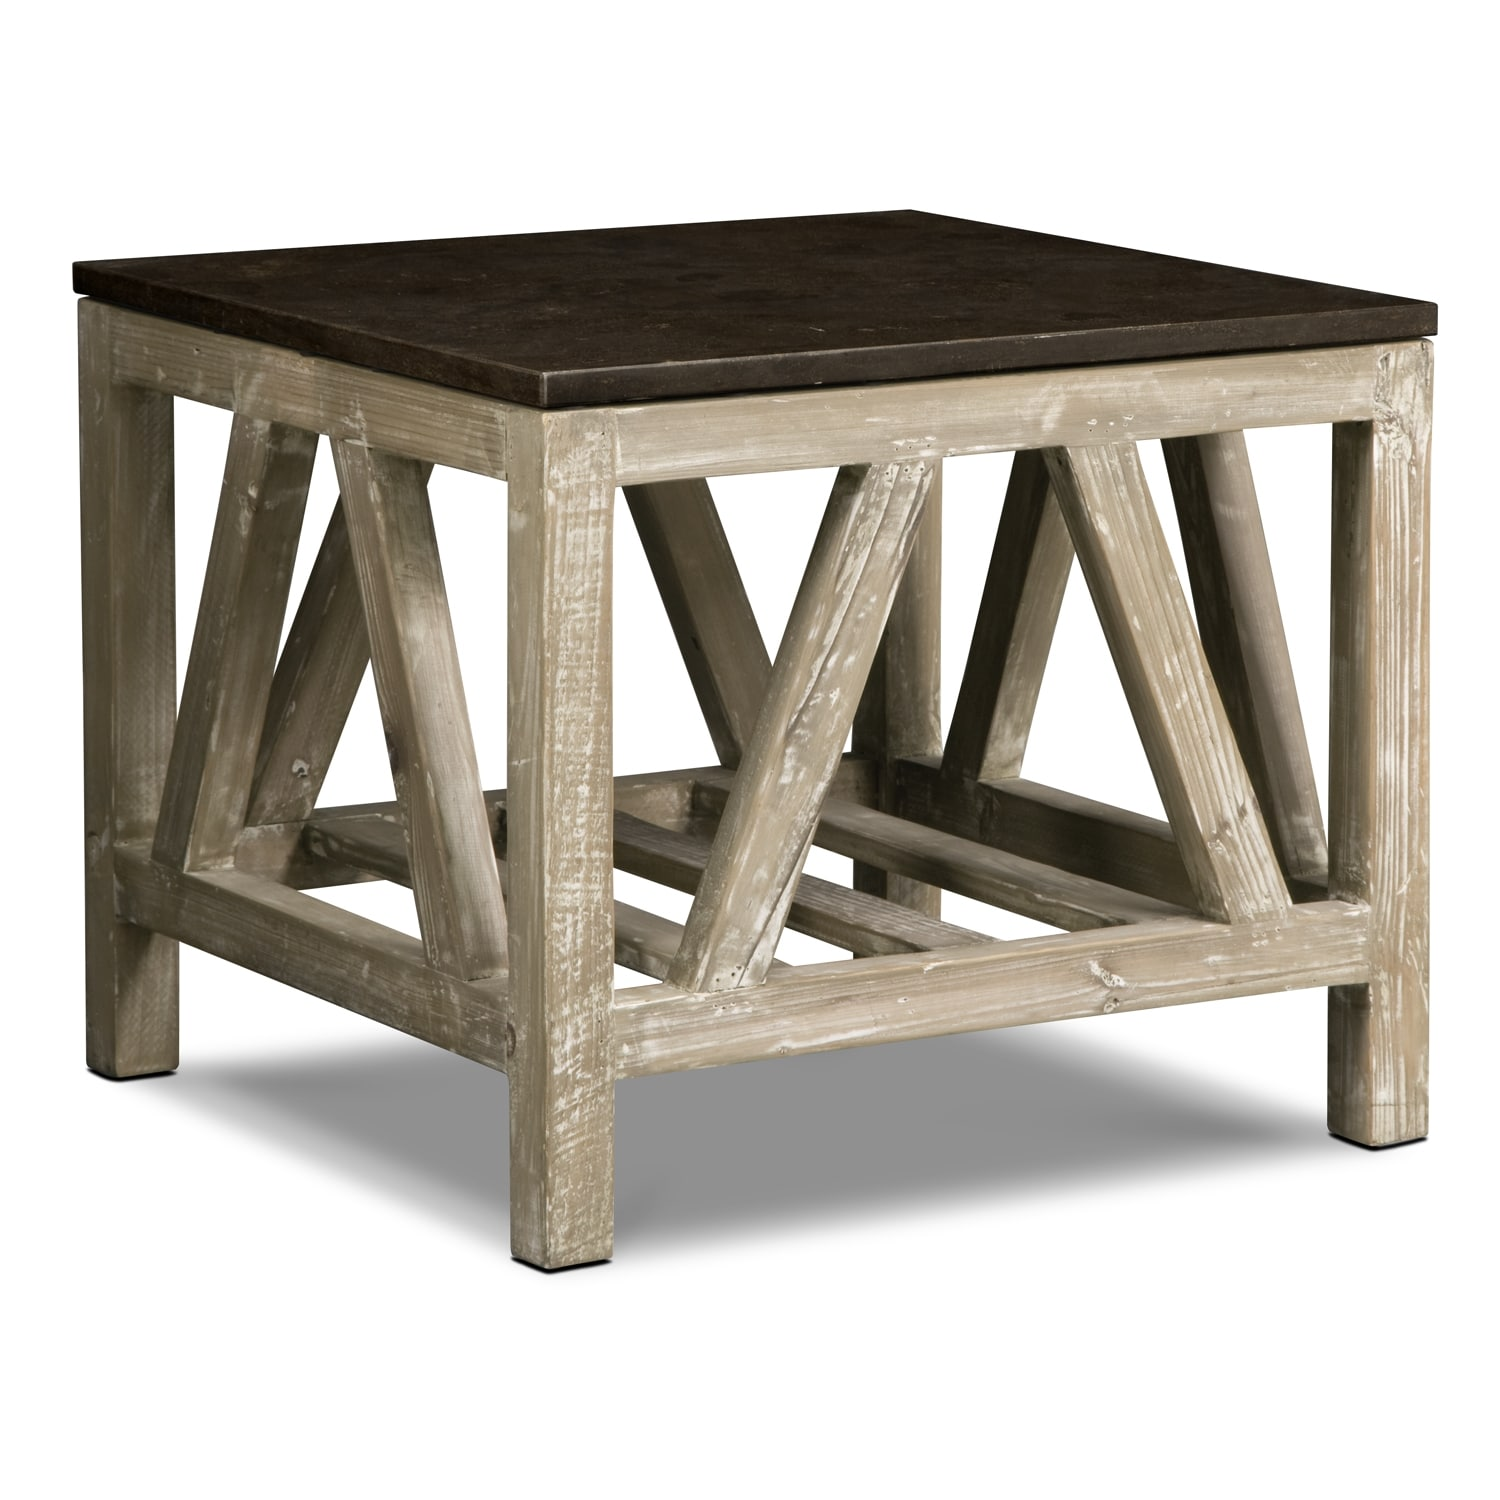 Grandin End Table - Brown  sc 1 st  Value City Furniture & End Tables | Living Room Tables | Value City Furniture and Mattresses